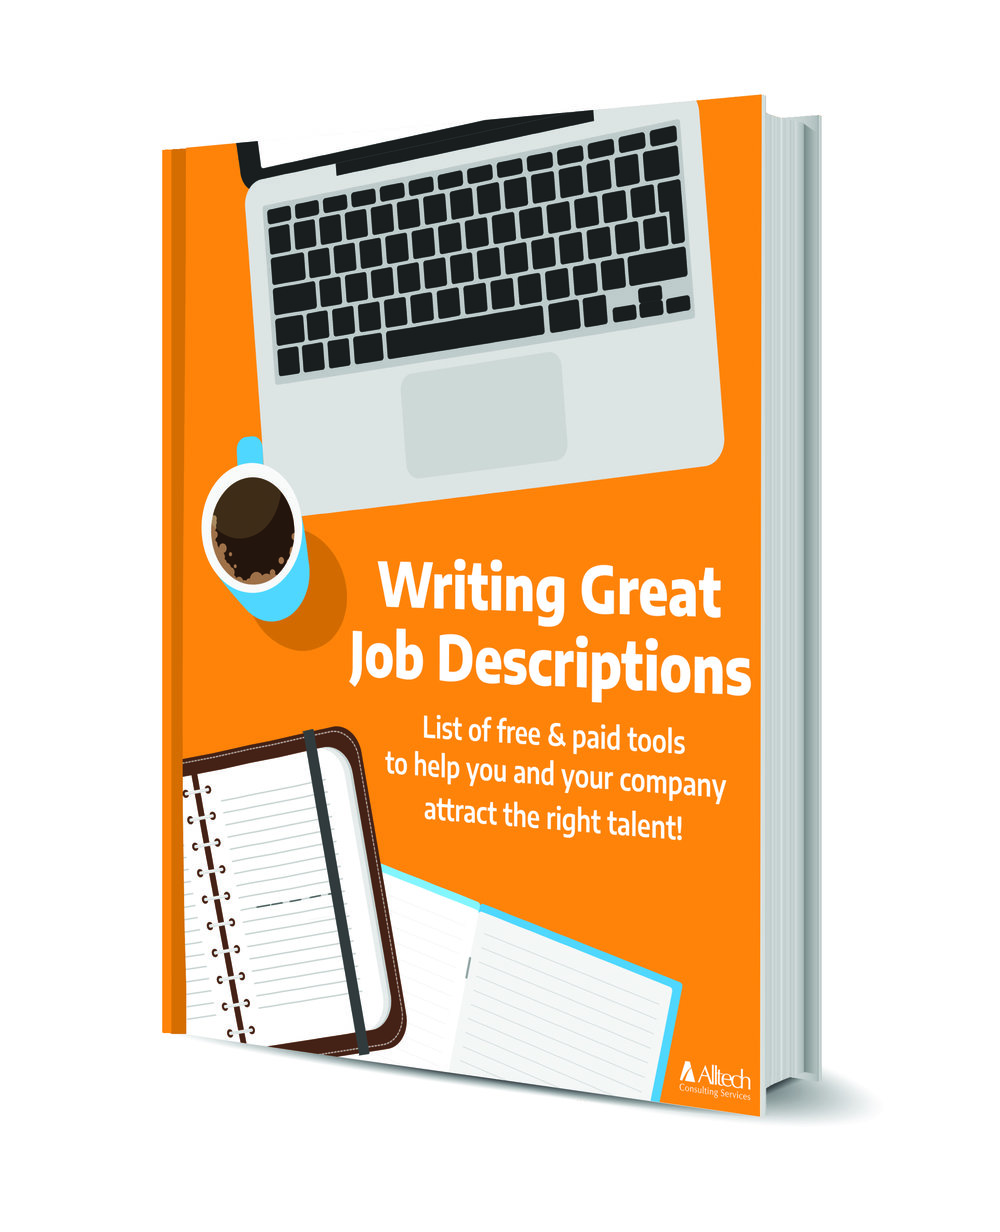 Writing Great Job Descriptions - List of free and paid tools to help you and your company attract the right talent.